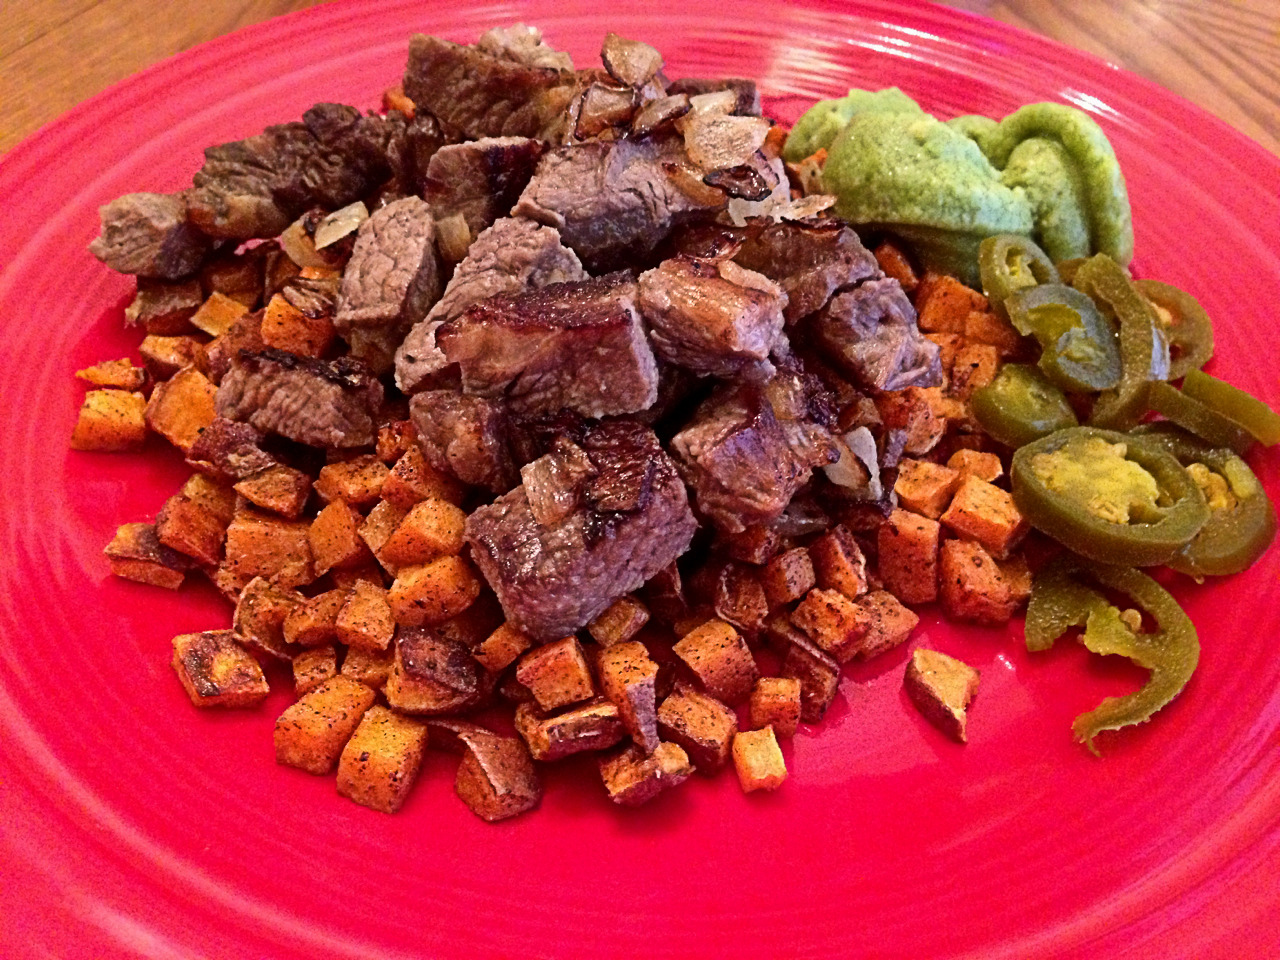 Breakfast: steak strips, sweet potato fries, guac, and jalapeno peppers (All WLC compliant, by the way). The best part about this was the prep time took next to nothing.  Sure, it took some time to cook the sweet potatoes but we have done exceptionally well at meal planning and prepping this week. I cooked the majority of the meat on Sunday.  Last night I cut up the sweet potatoes and got the pan ready to cook.  This morning most of the hard work had already been done, so it took a lot less time. Over the weekend I had written out a meal plan and went shopping based on that.  When you have a 6 year old, a 3 year old, a job, etc. life gets hectic.  This planning and prepping might seem over the top, but this week we have done a great job at it and I am amazed at how much stress this relieves. Last night when I got home and my wife was at the gym, I didn't have to stare into the fridge and wonder what to cook.  I just looked at our meal plan and did it.  I knew we had the ingredients, some of which had already been prepared.  That peace of mind has been helpful for us but most importantly, allowed us to stay focused and not deviate from eating clean.